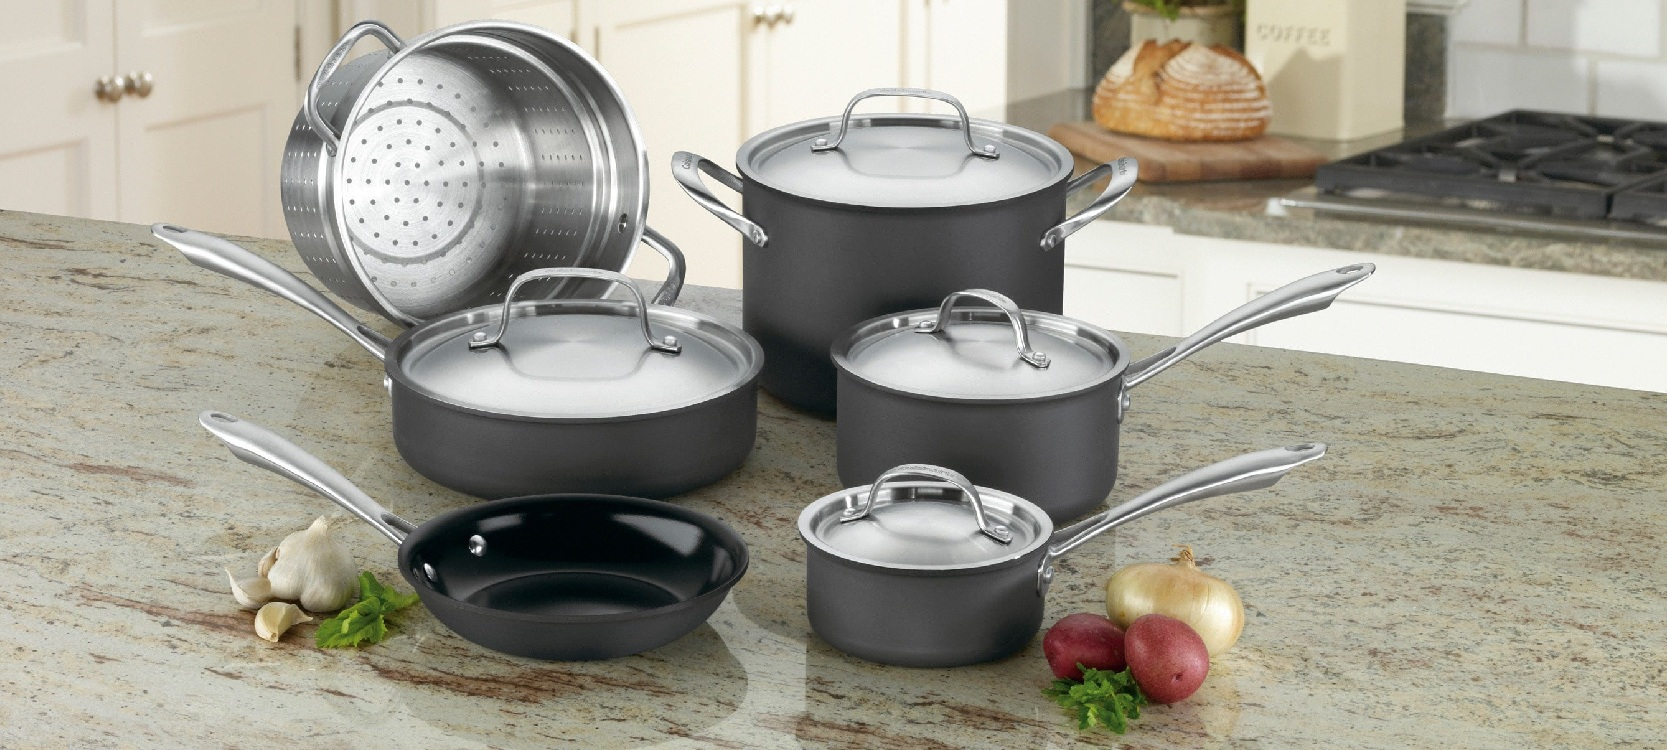 the full set of Cuisinart ceramic cookware sitting beauty in the kitchen